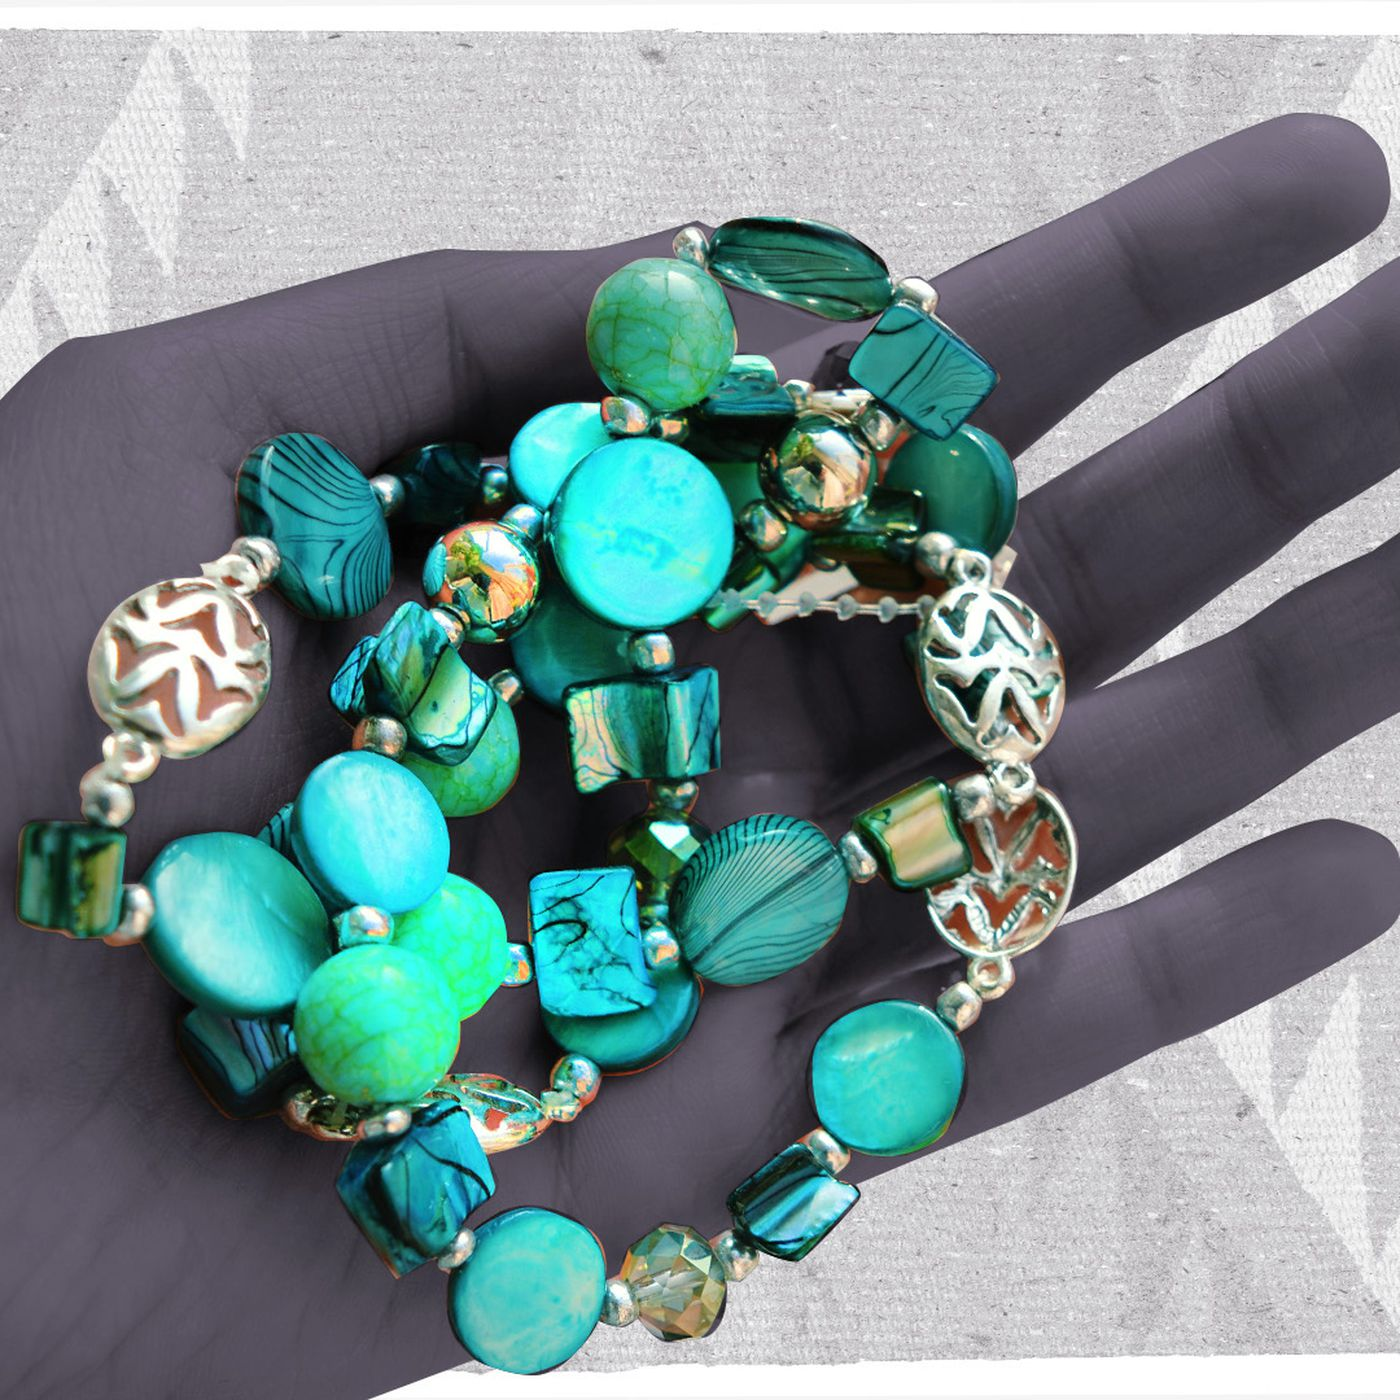 Fake Turquoise Jewelry Hurts Native Americans Economically Vox